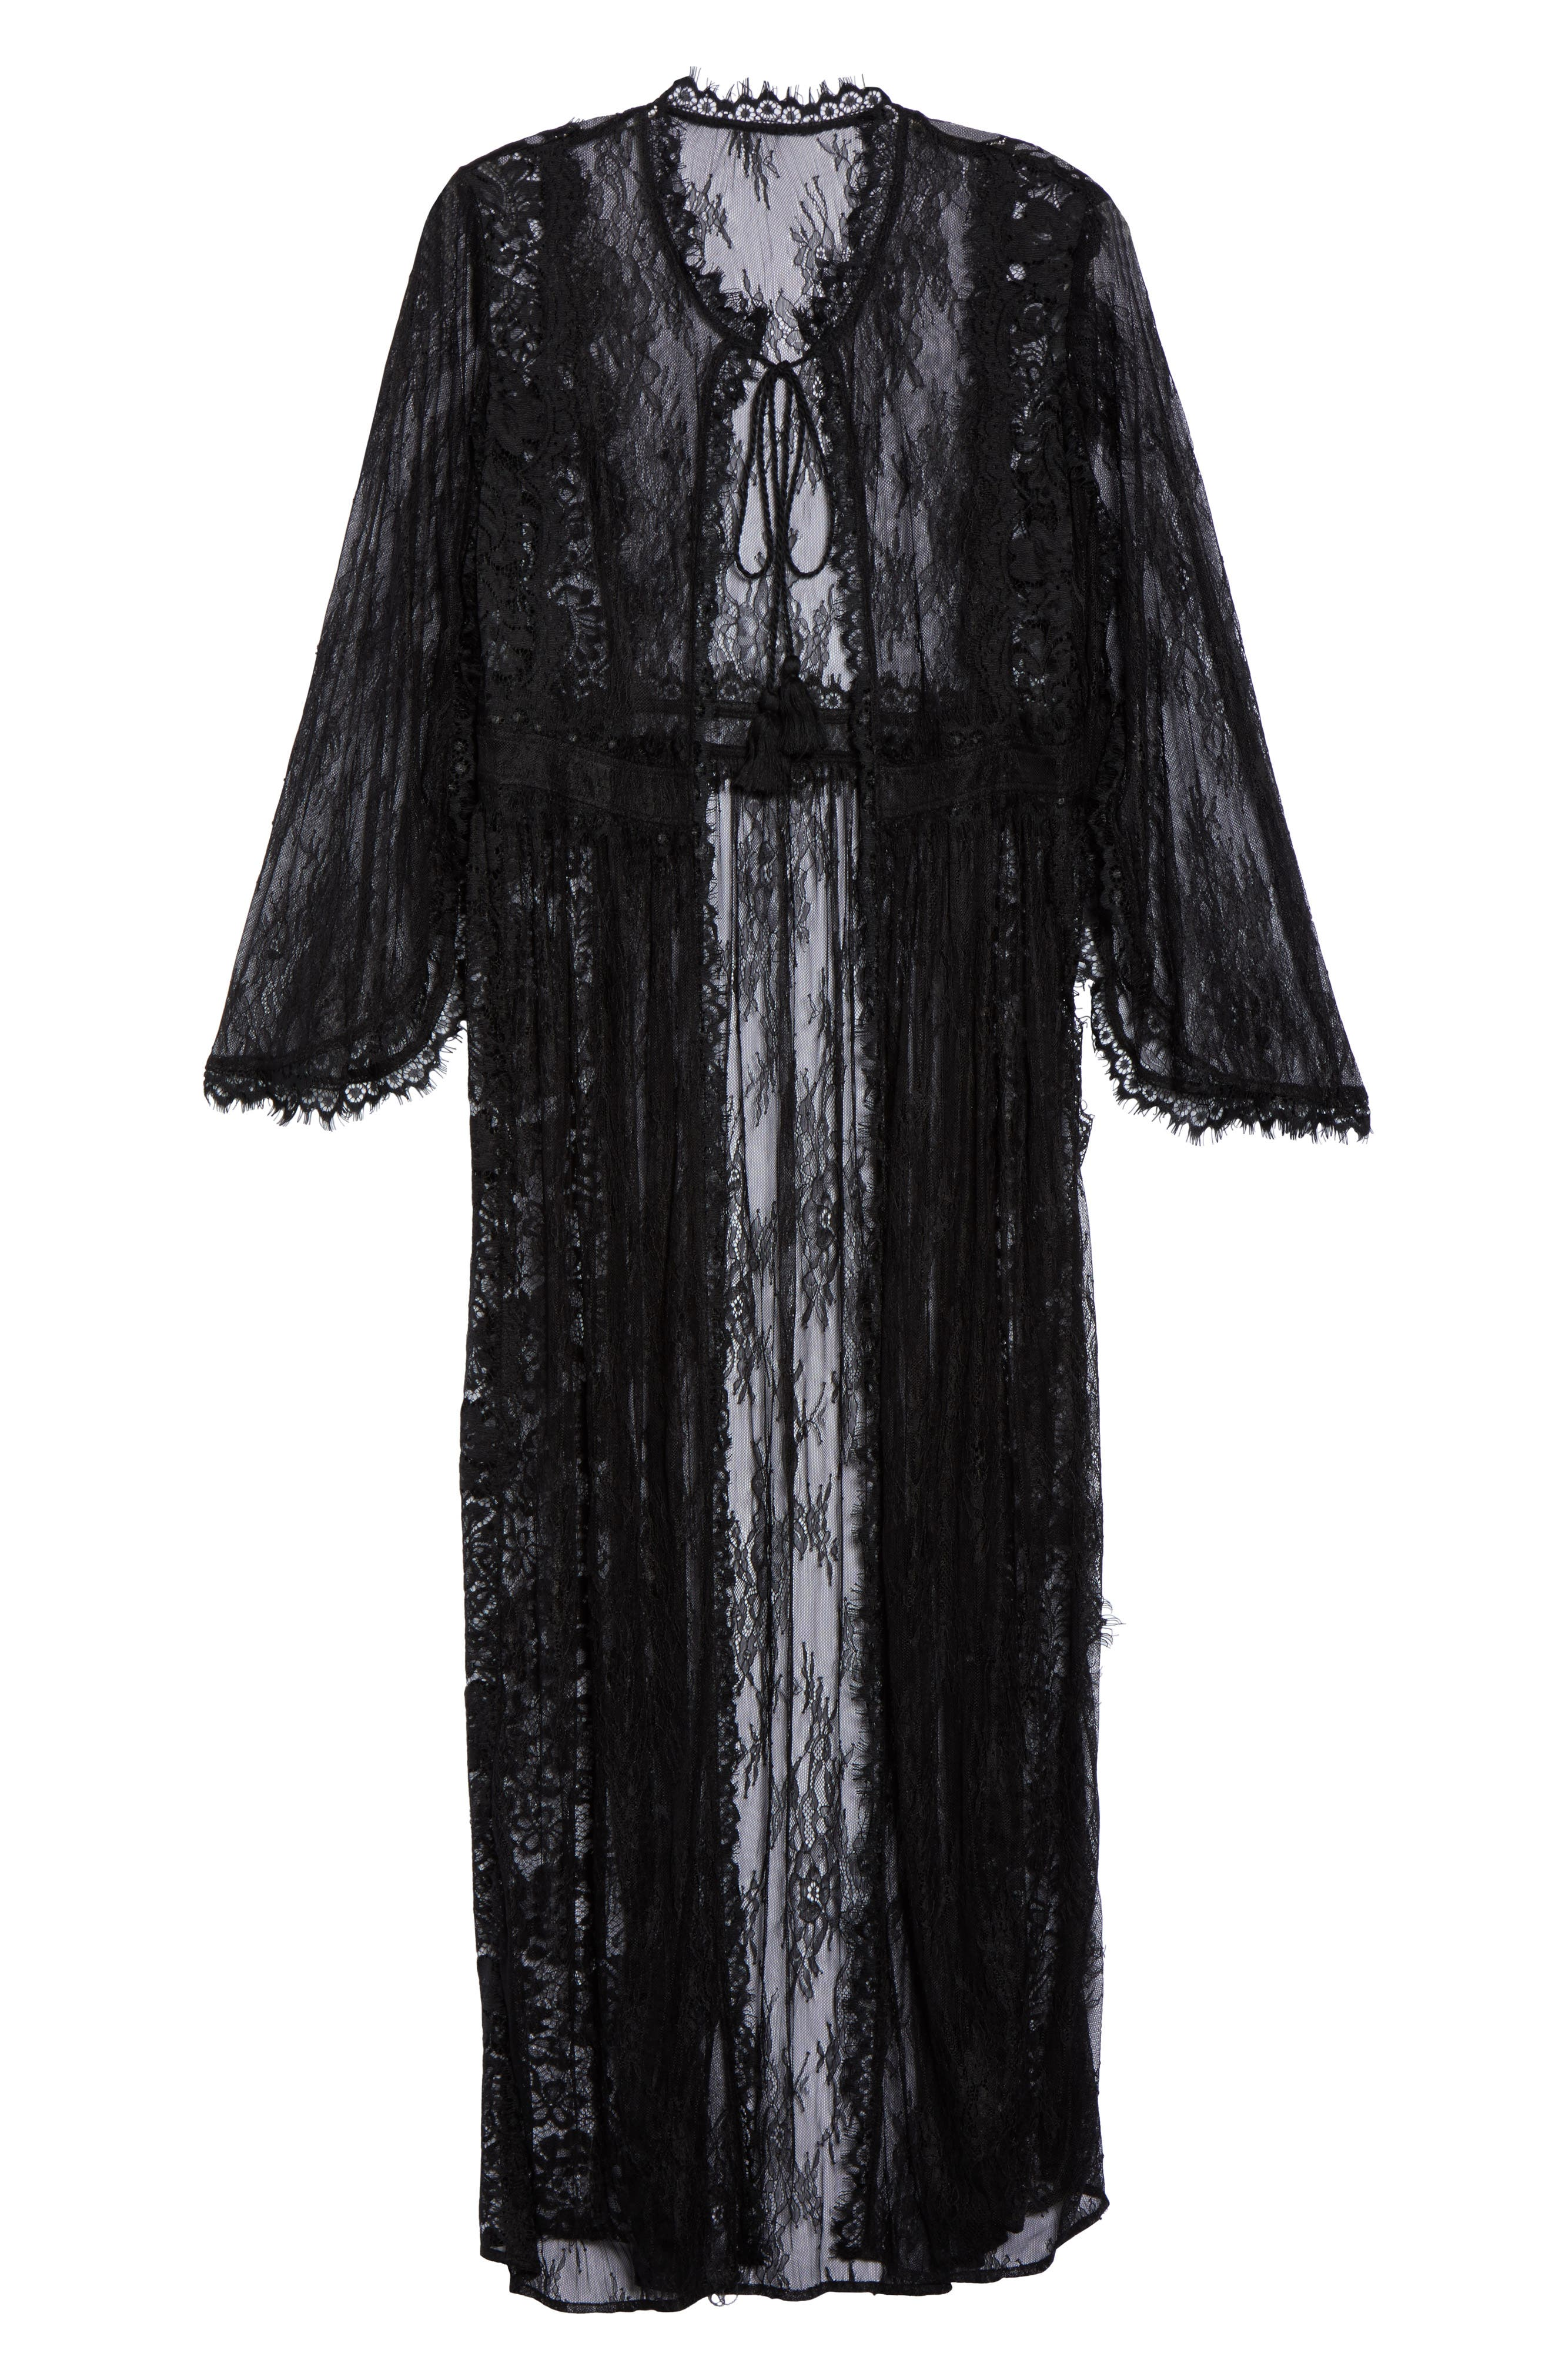 Intimately FP Chelsea Lace Robe,                             Alternate thumbnail 6, color,                             001